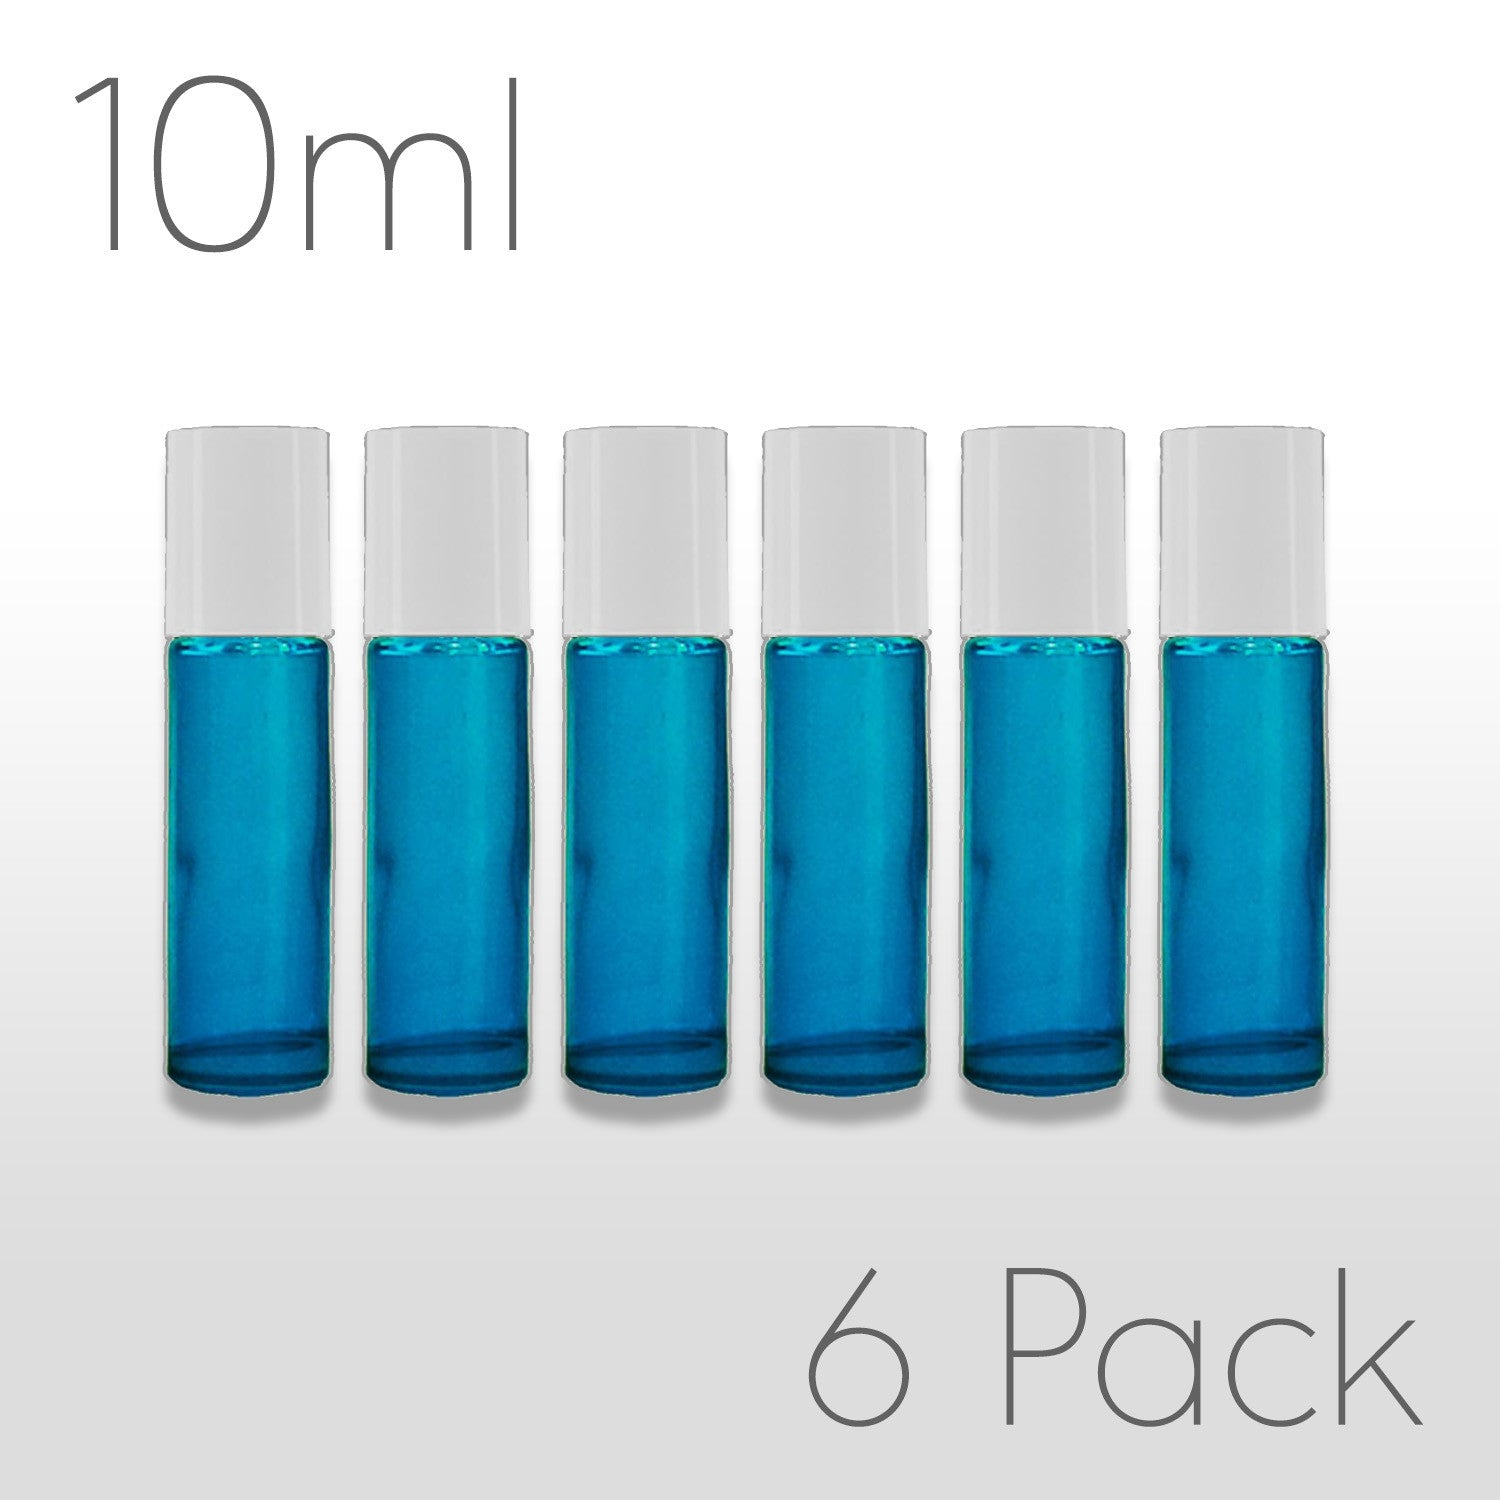 Teal 10 ml Roller Bottles - Set of 6